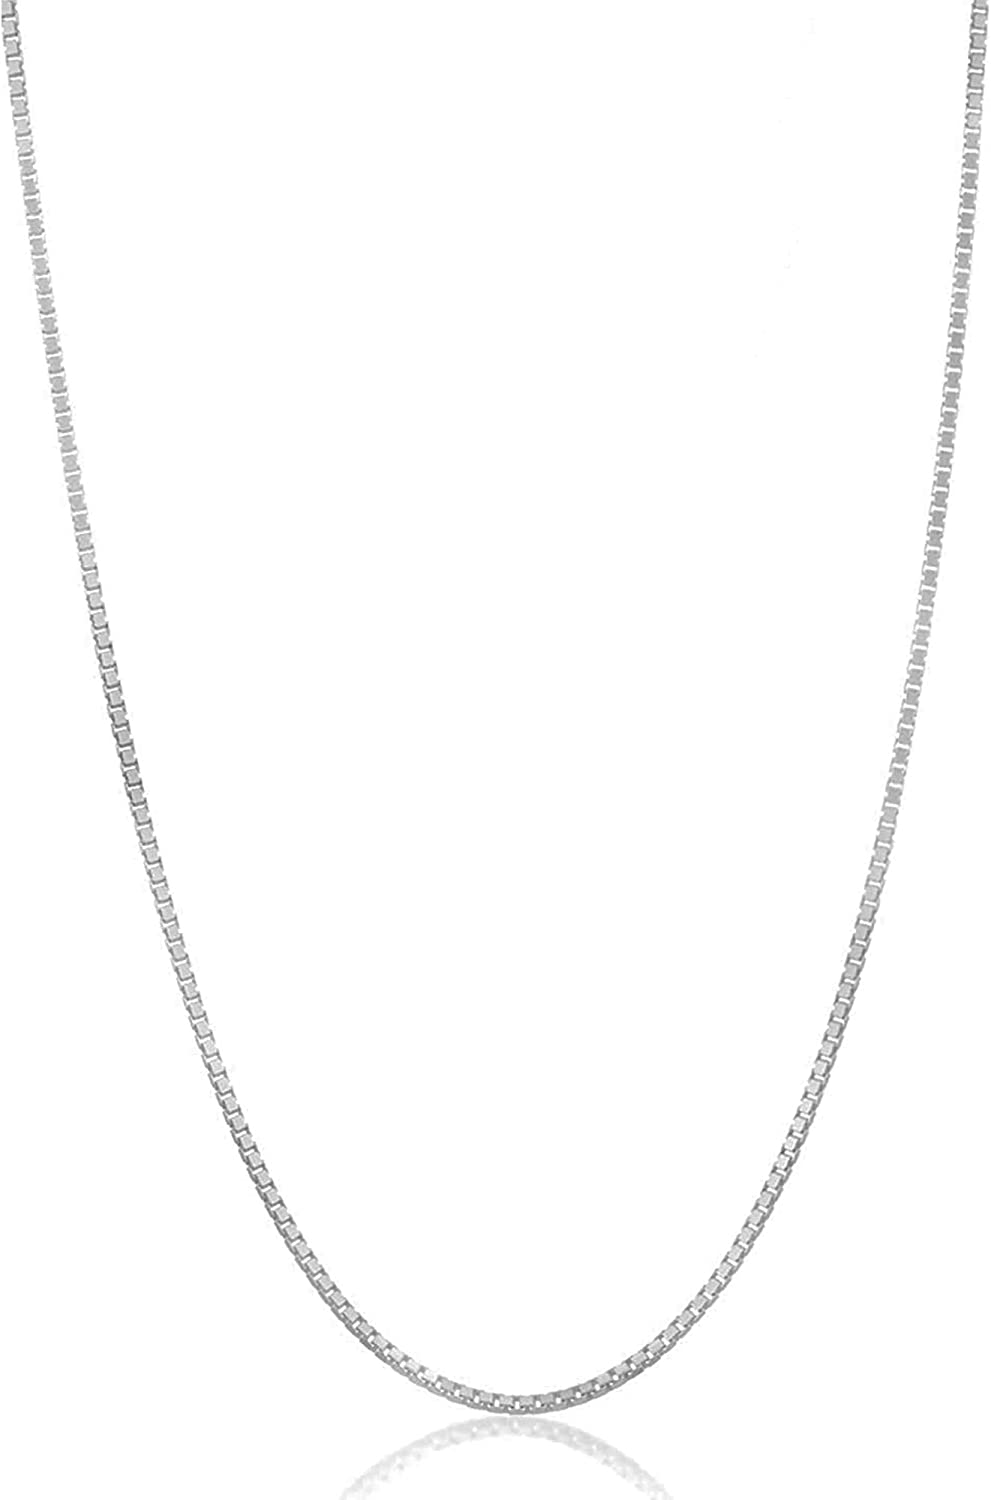 Authentic Solid Sterling Silver Box 1MM Max 59% OFF - Rhodium Chain Bargain sale Necklace